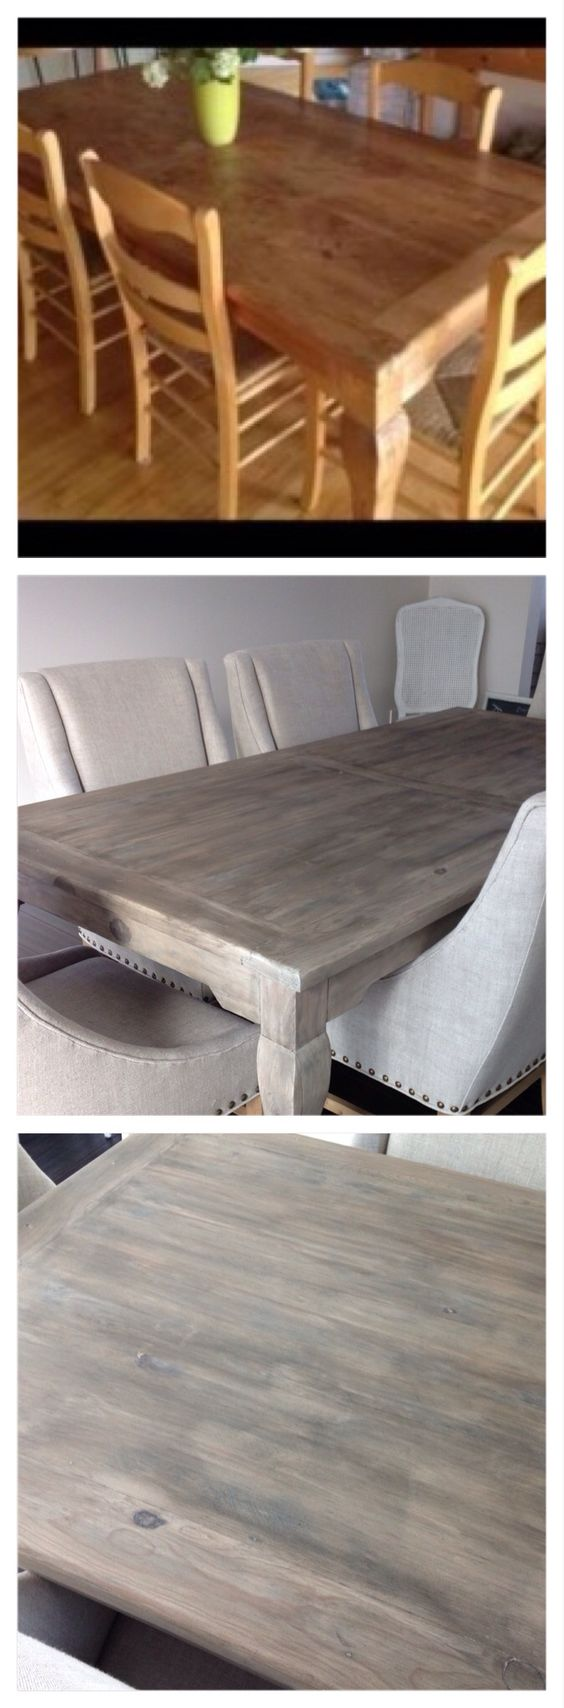 DIY Restoration Hardware finish. Craigslist table: stripped, sanded, bleached (used a deck bleach), liming wax, glaze (two coats), clear wax.